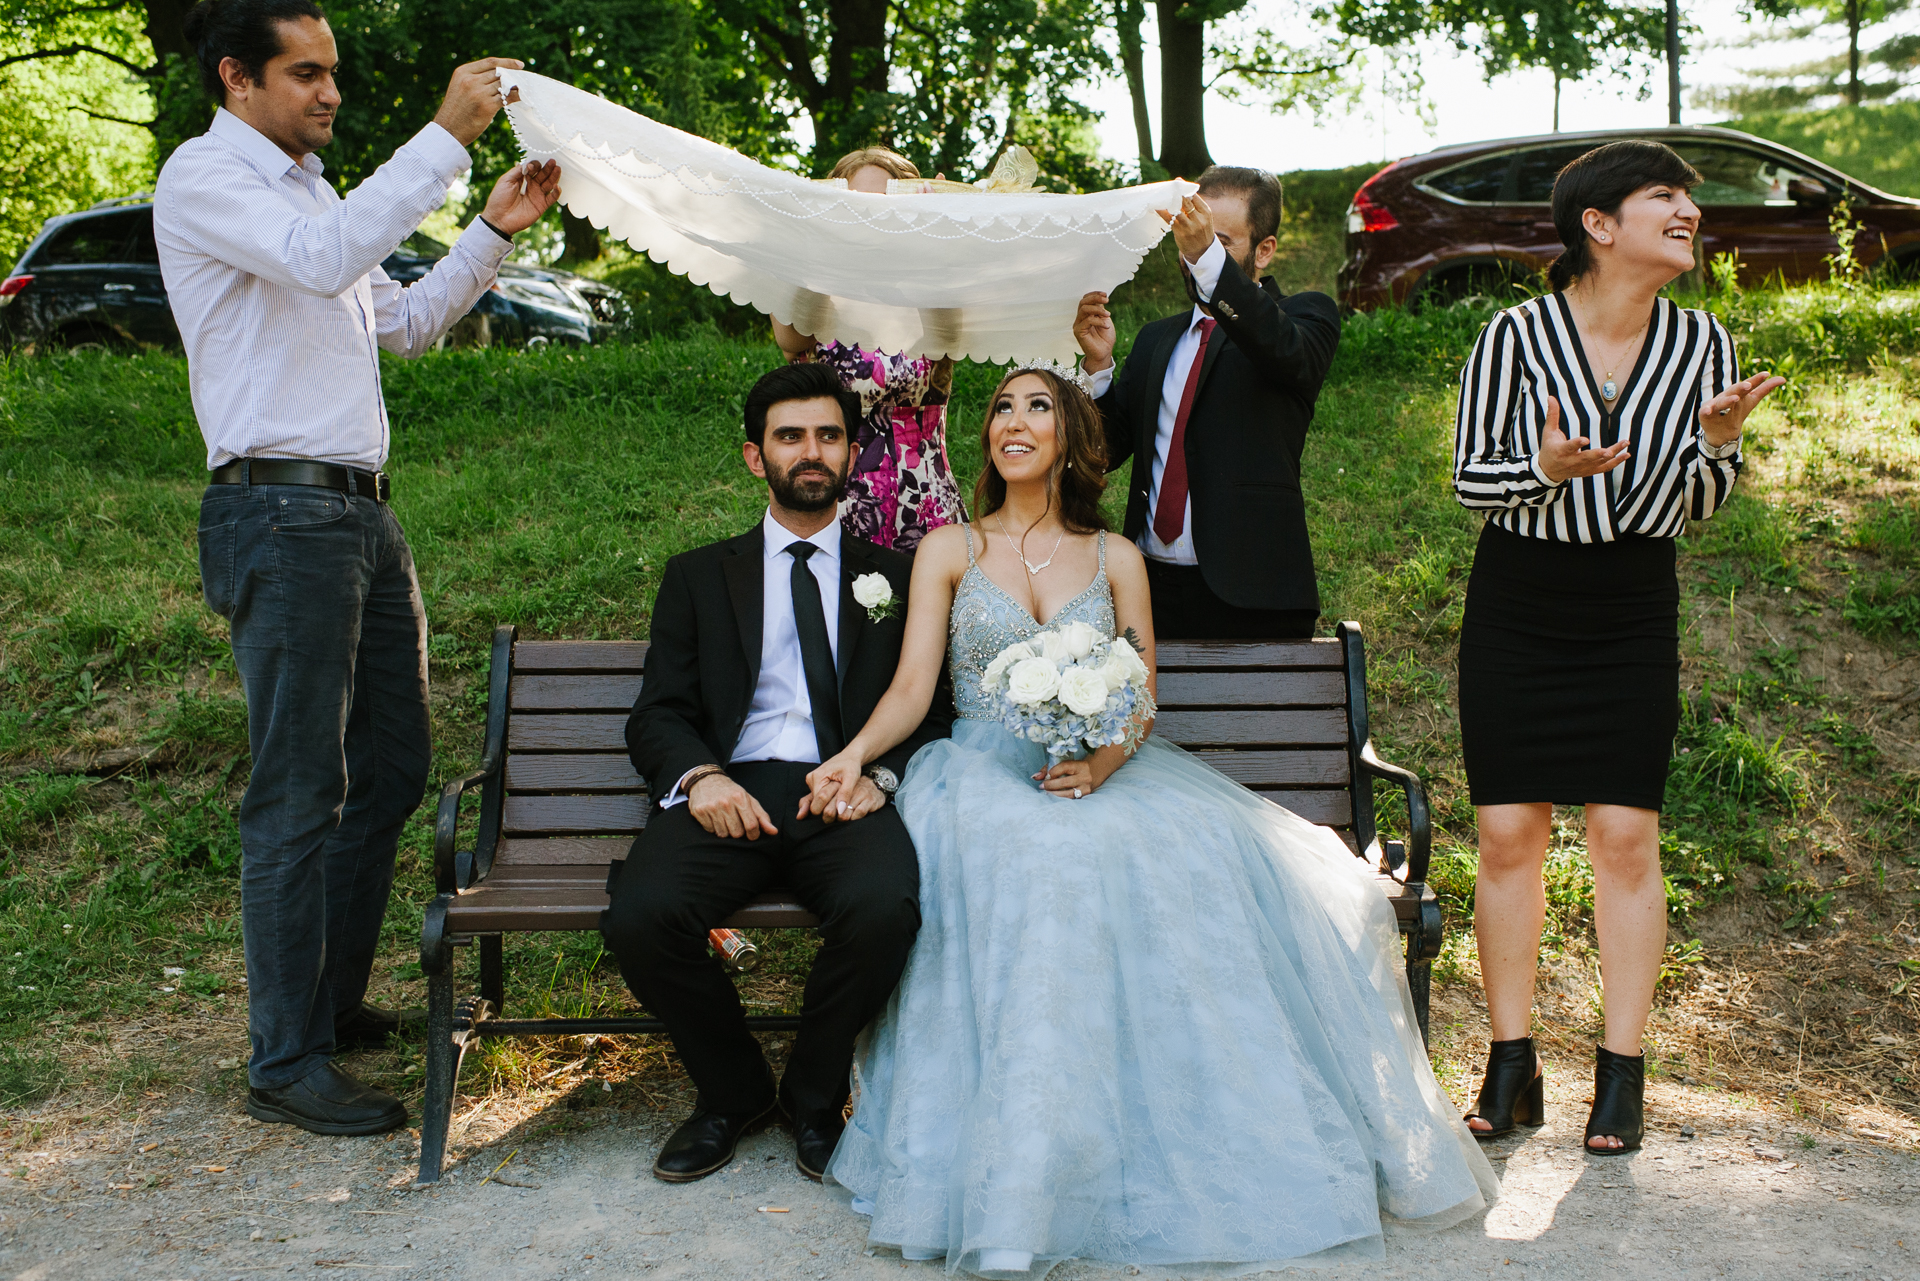 New York Wedding Elopement Photography | on a park bench as friends hold a fabric over them while sugar is sprinkled on the fabric